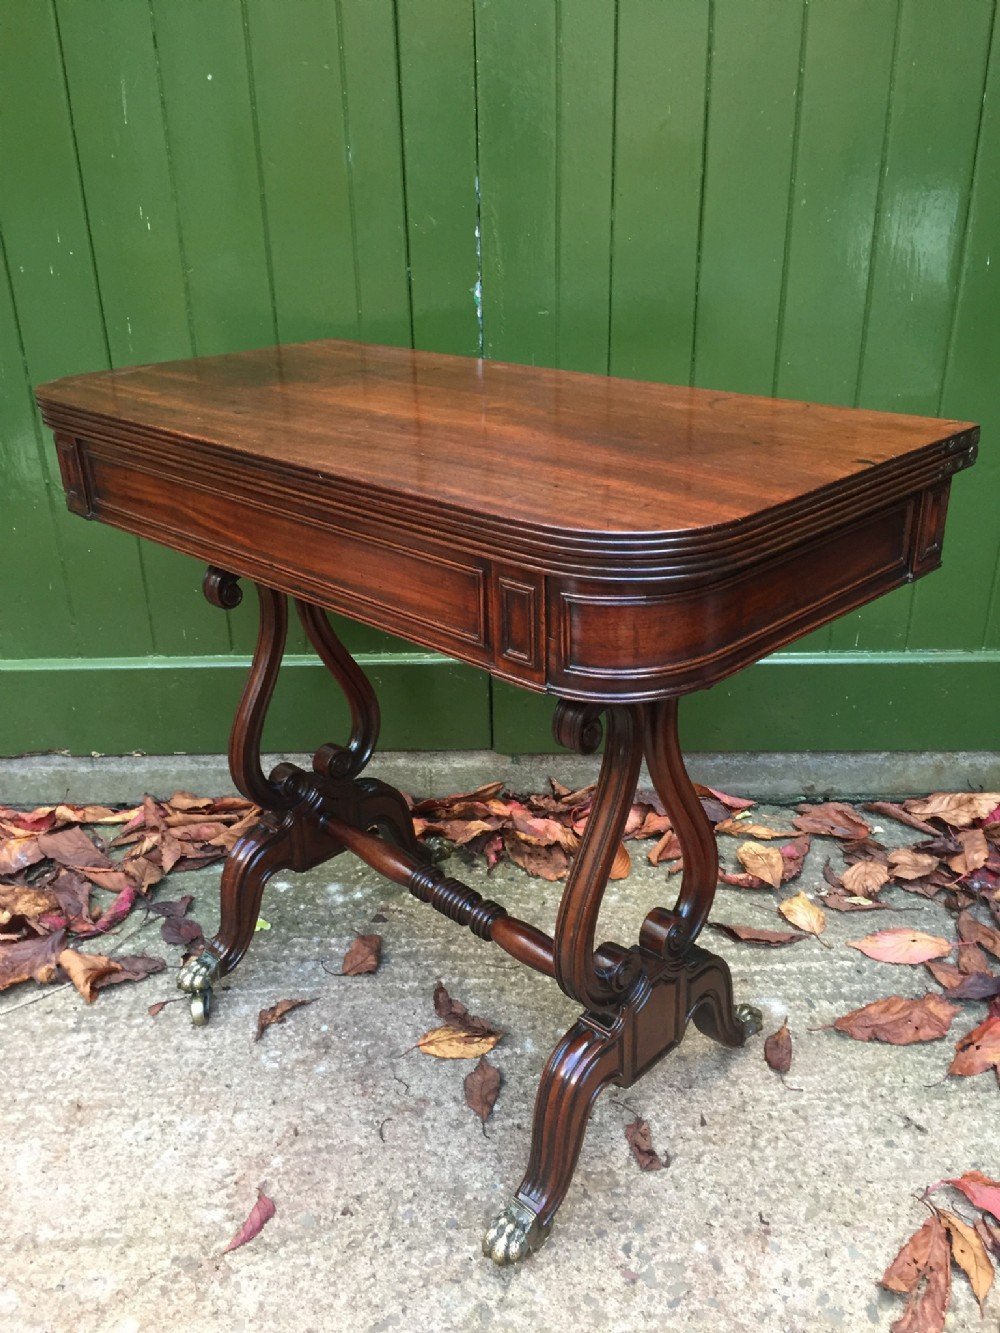 early c19th regency period mahogany foldover top teatable on 'lyre' end supports